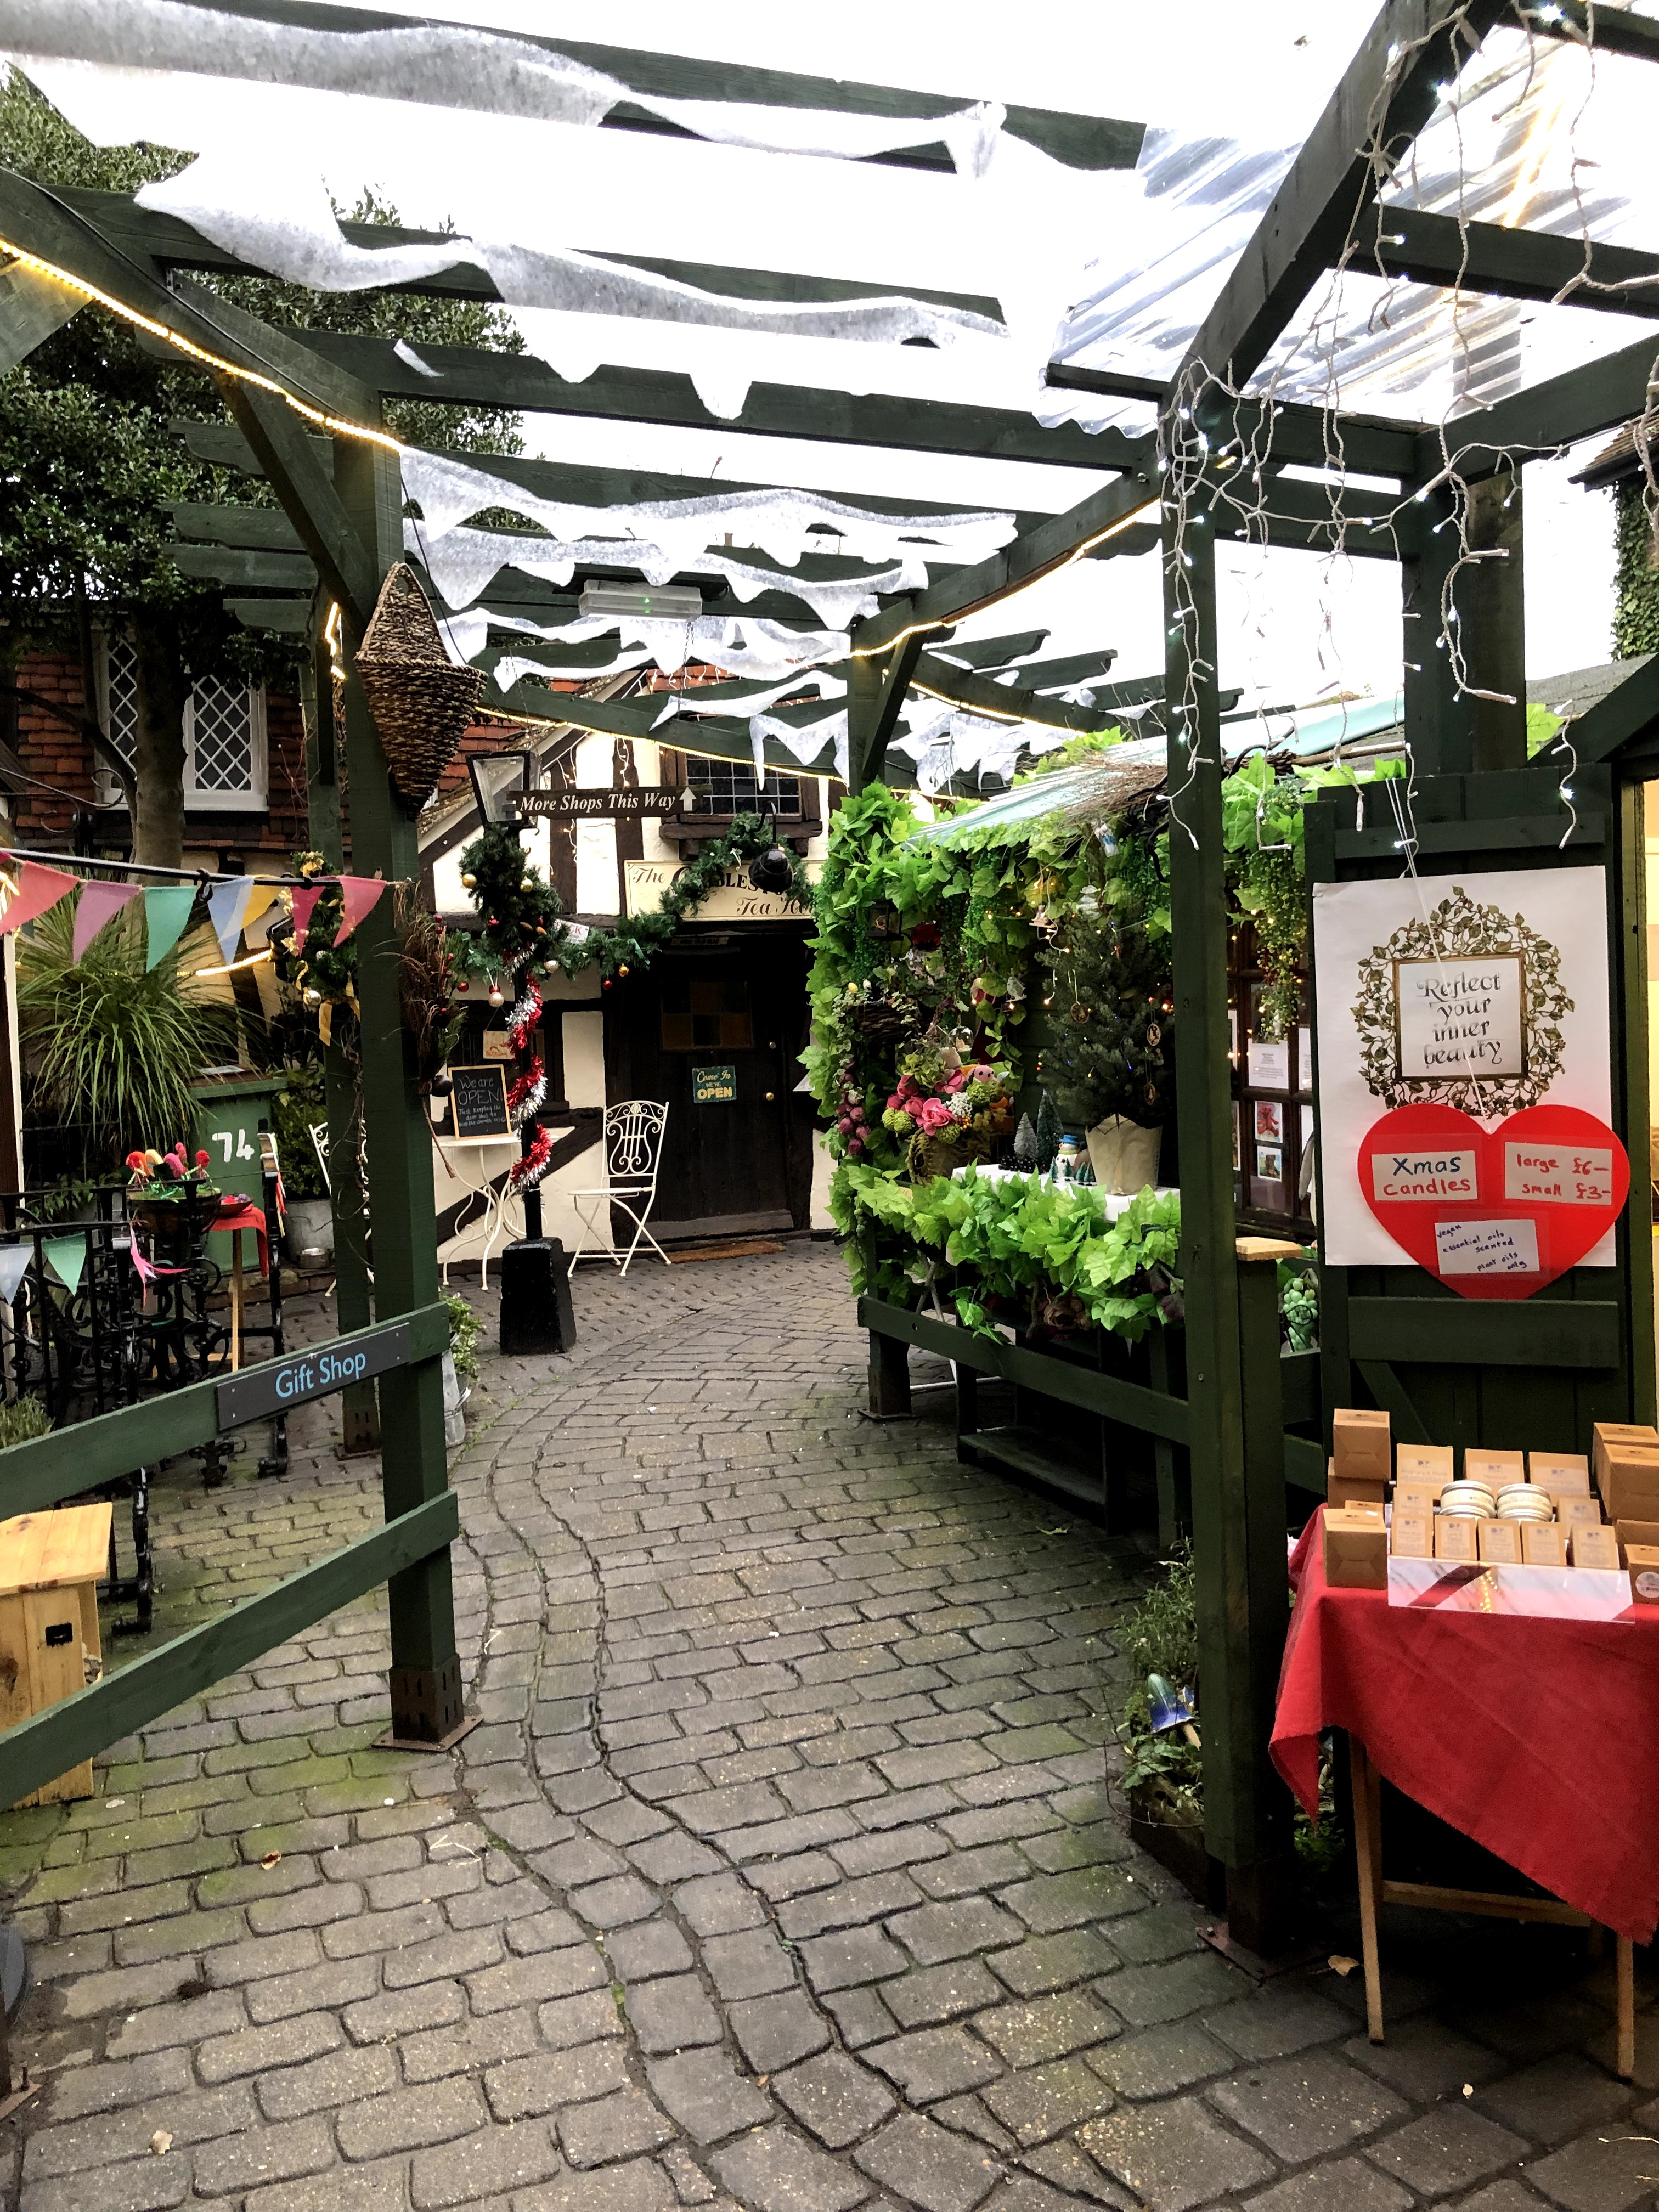 photo of small paved pathway between huts in a quaint shopping area